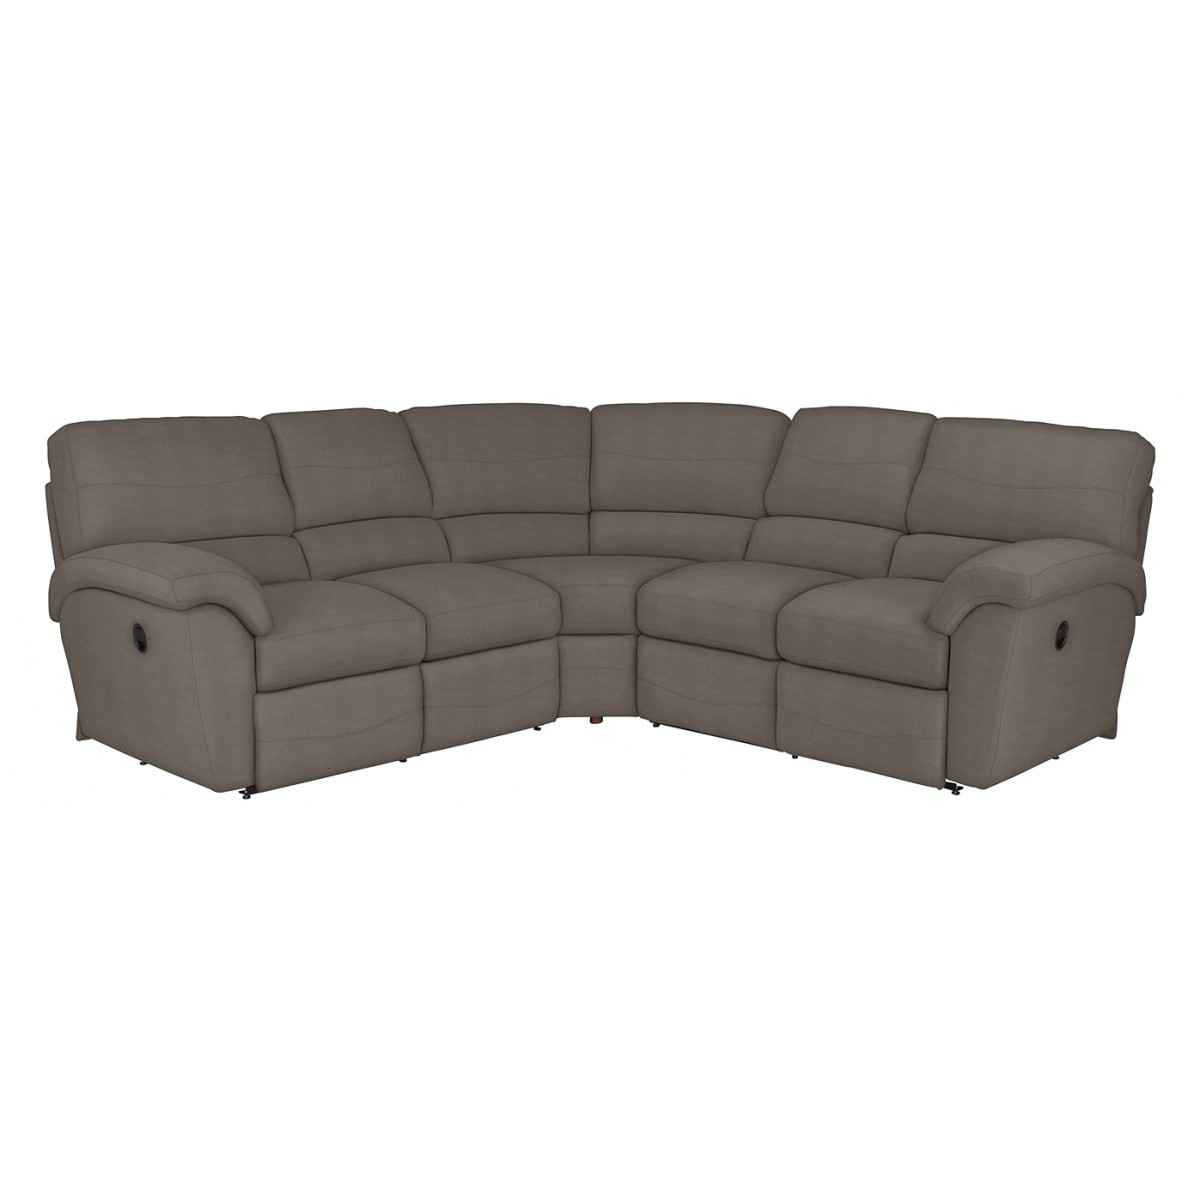 Widely Used Lazyboy Sectional Sofas Pertaining To Z Boy Reese Reclining Sectional (View 10 of 20)